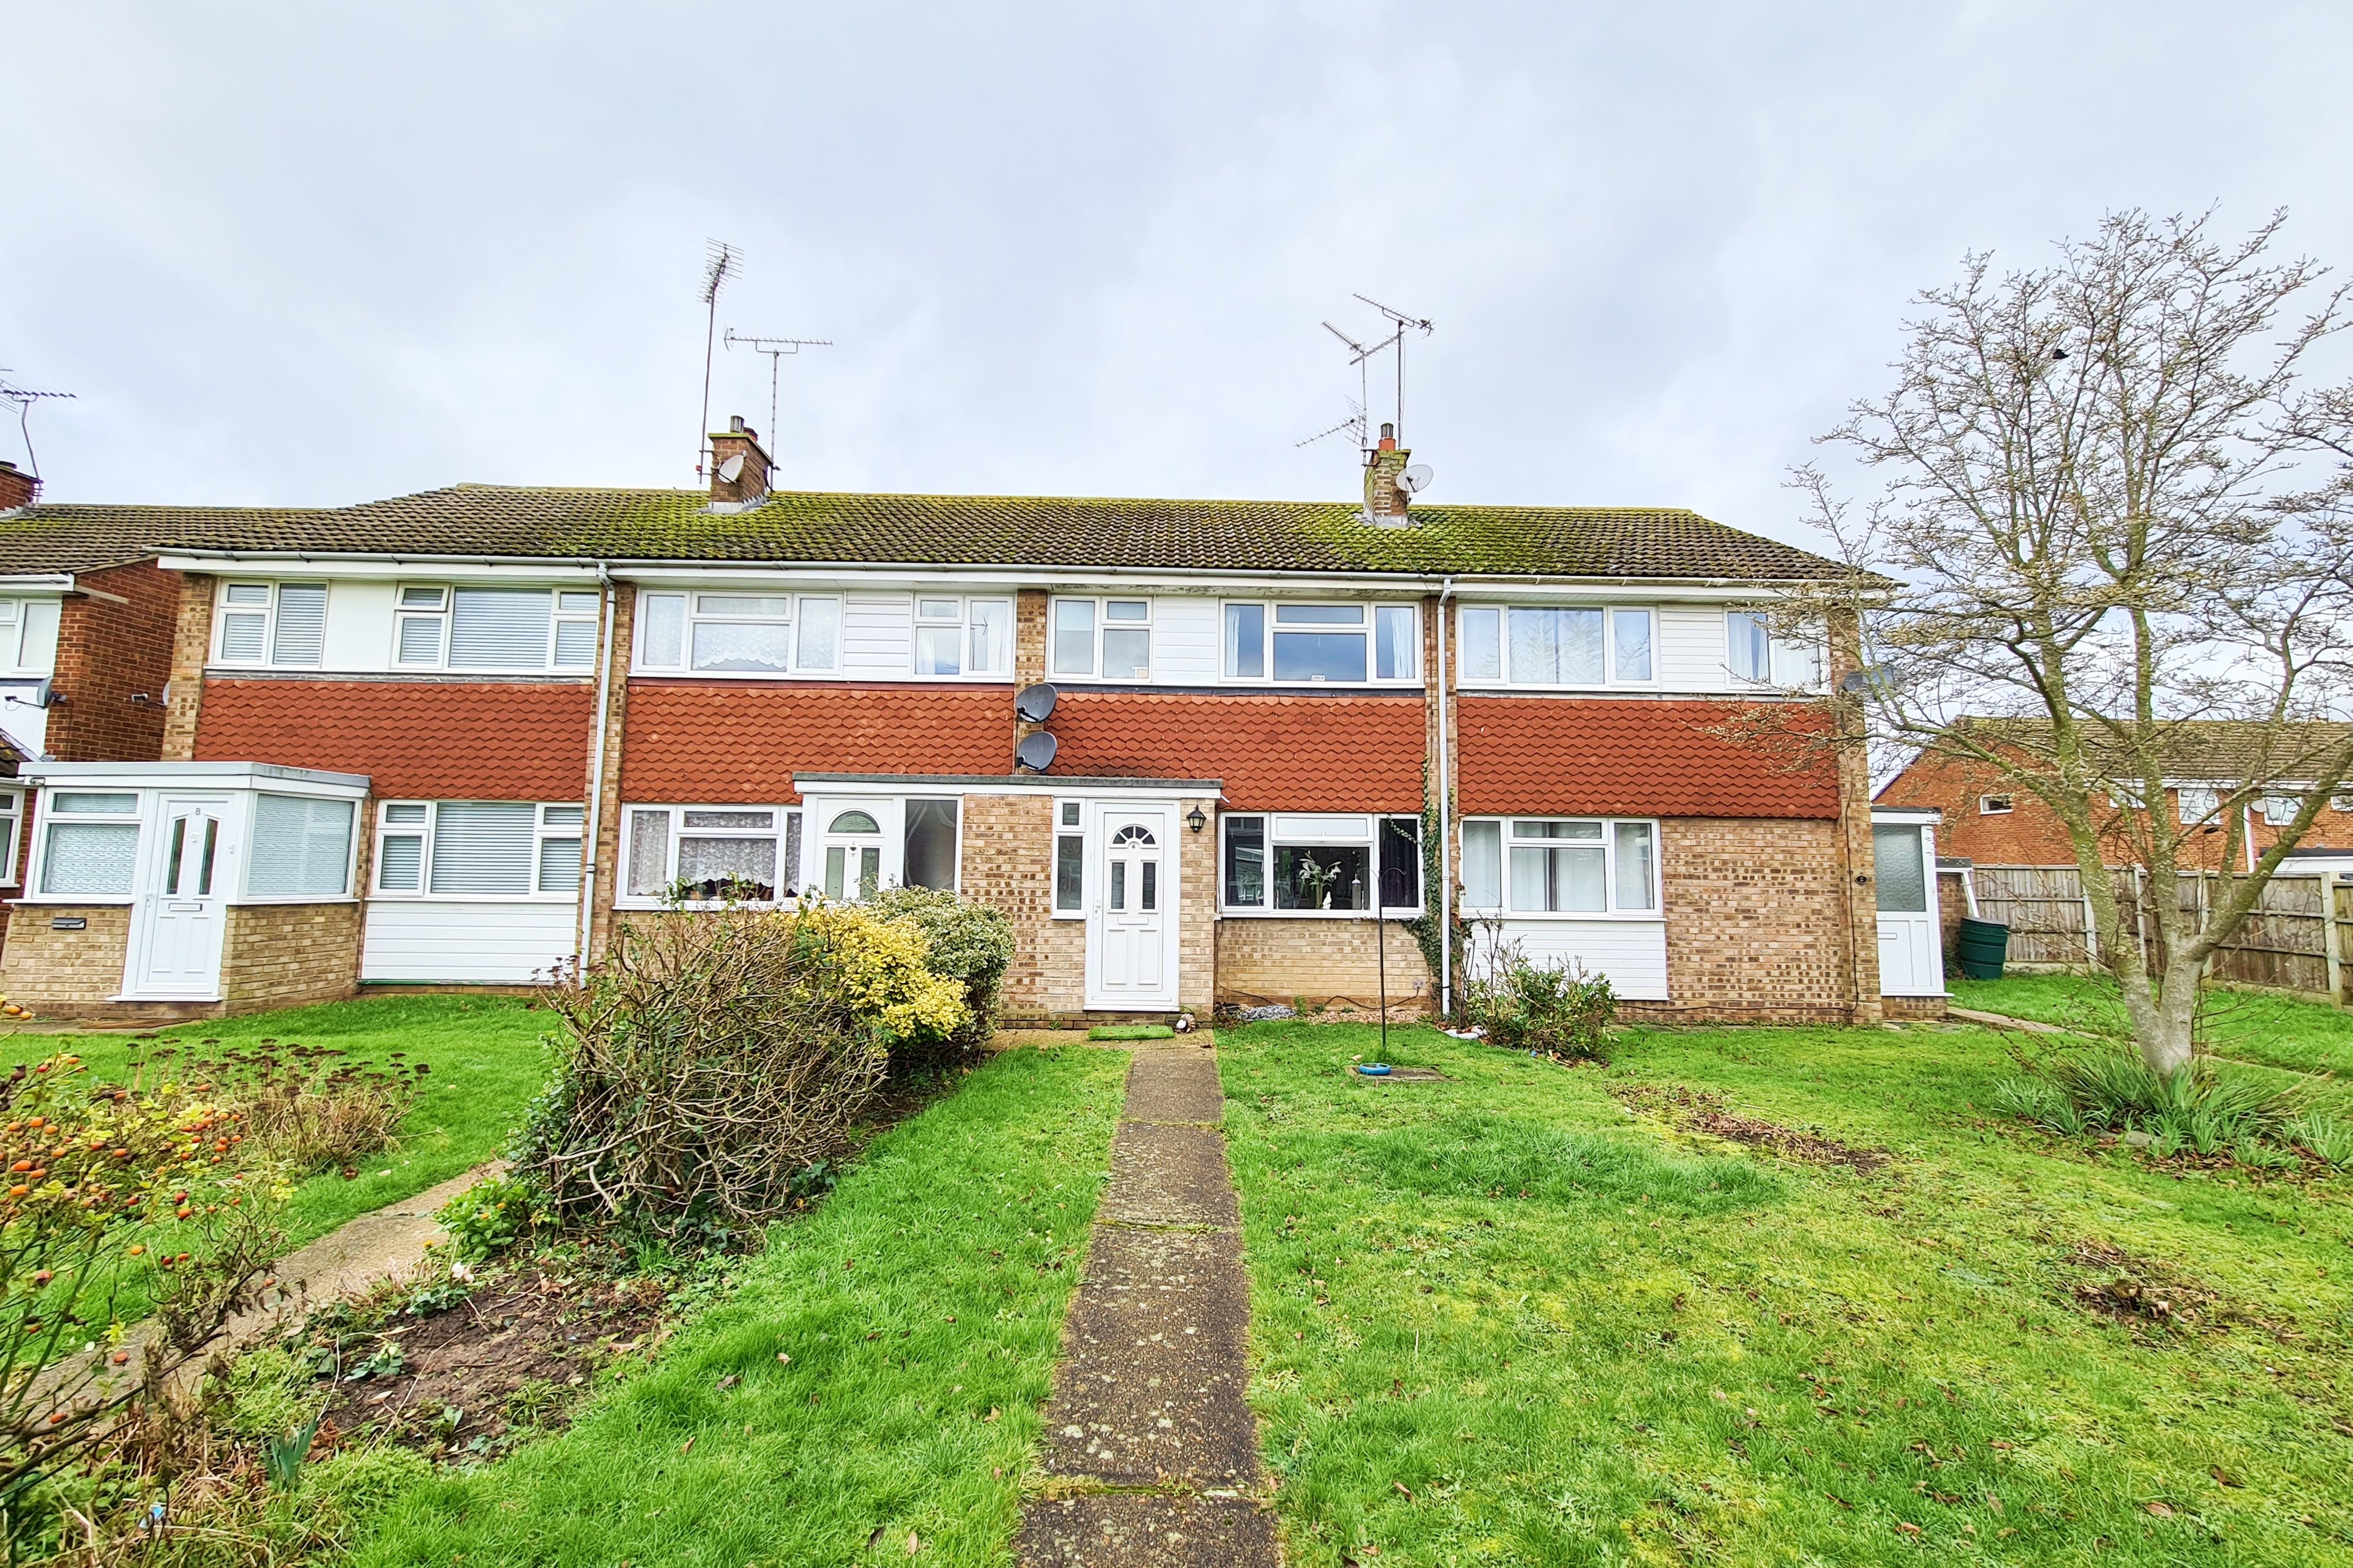 3 bed terraced house for sale in Scotts Walk, Rayleigh - Property Image 1